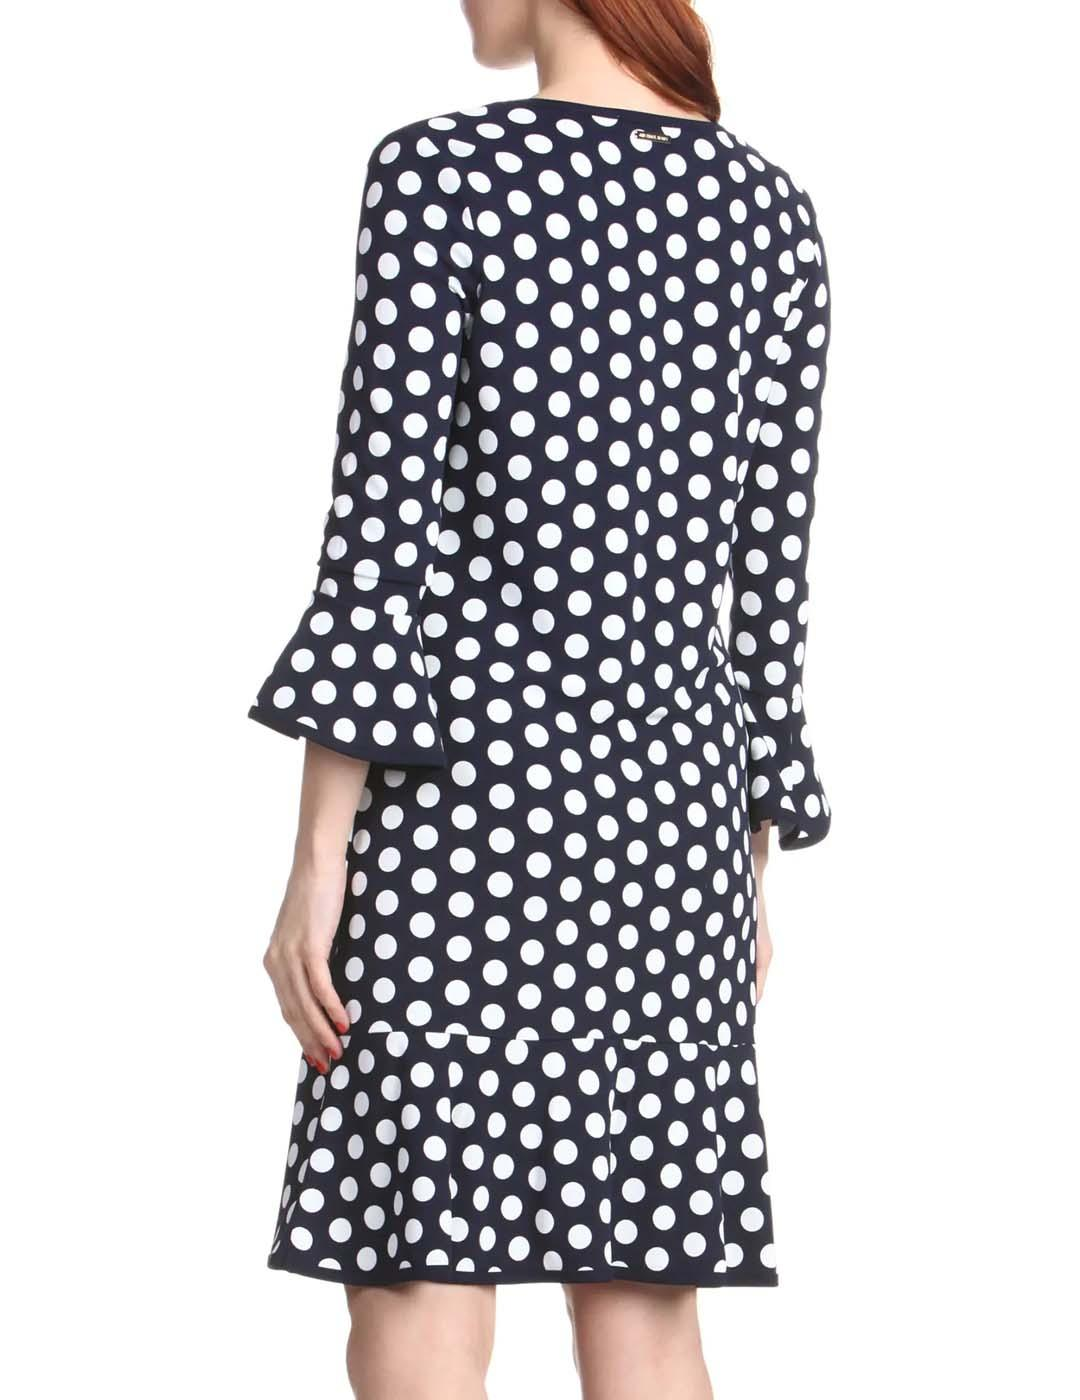 Vestido Michael Kors azul Dress with polka dots